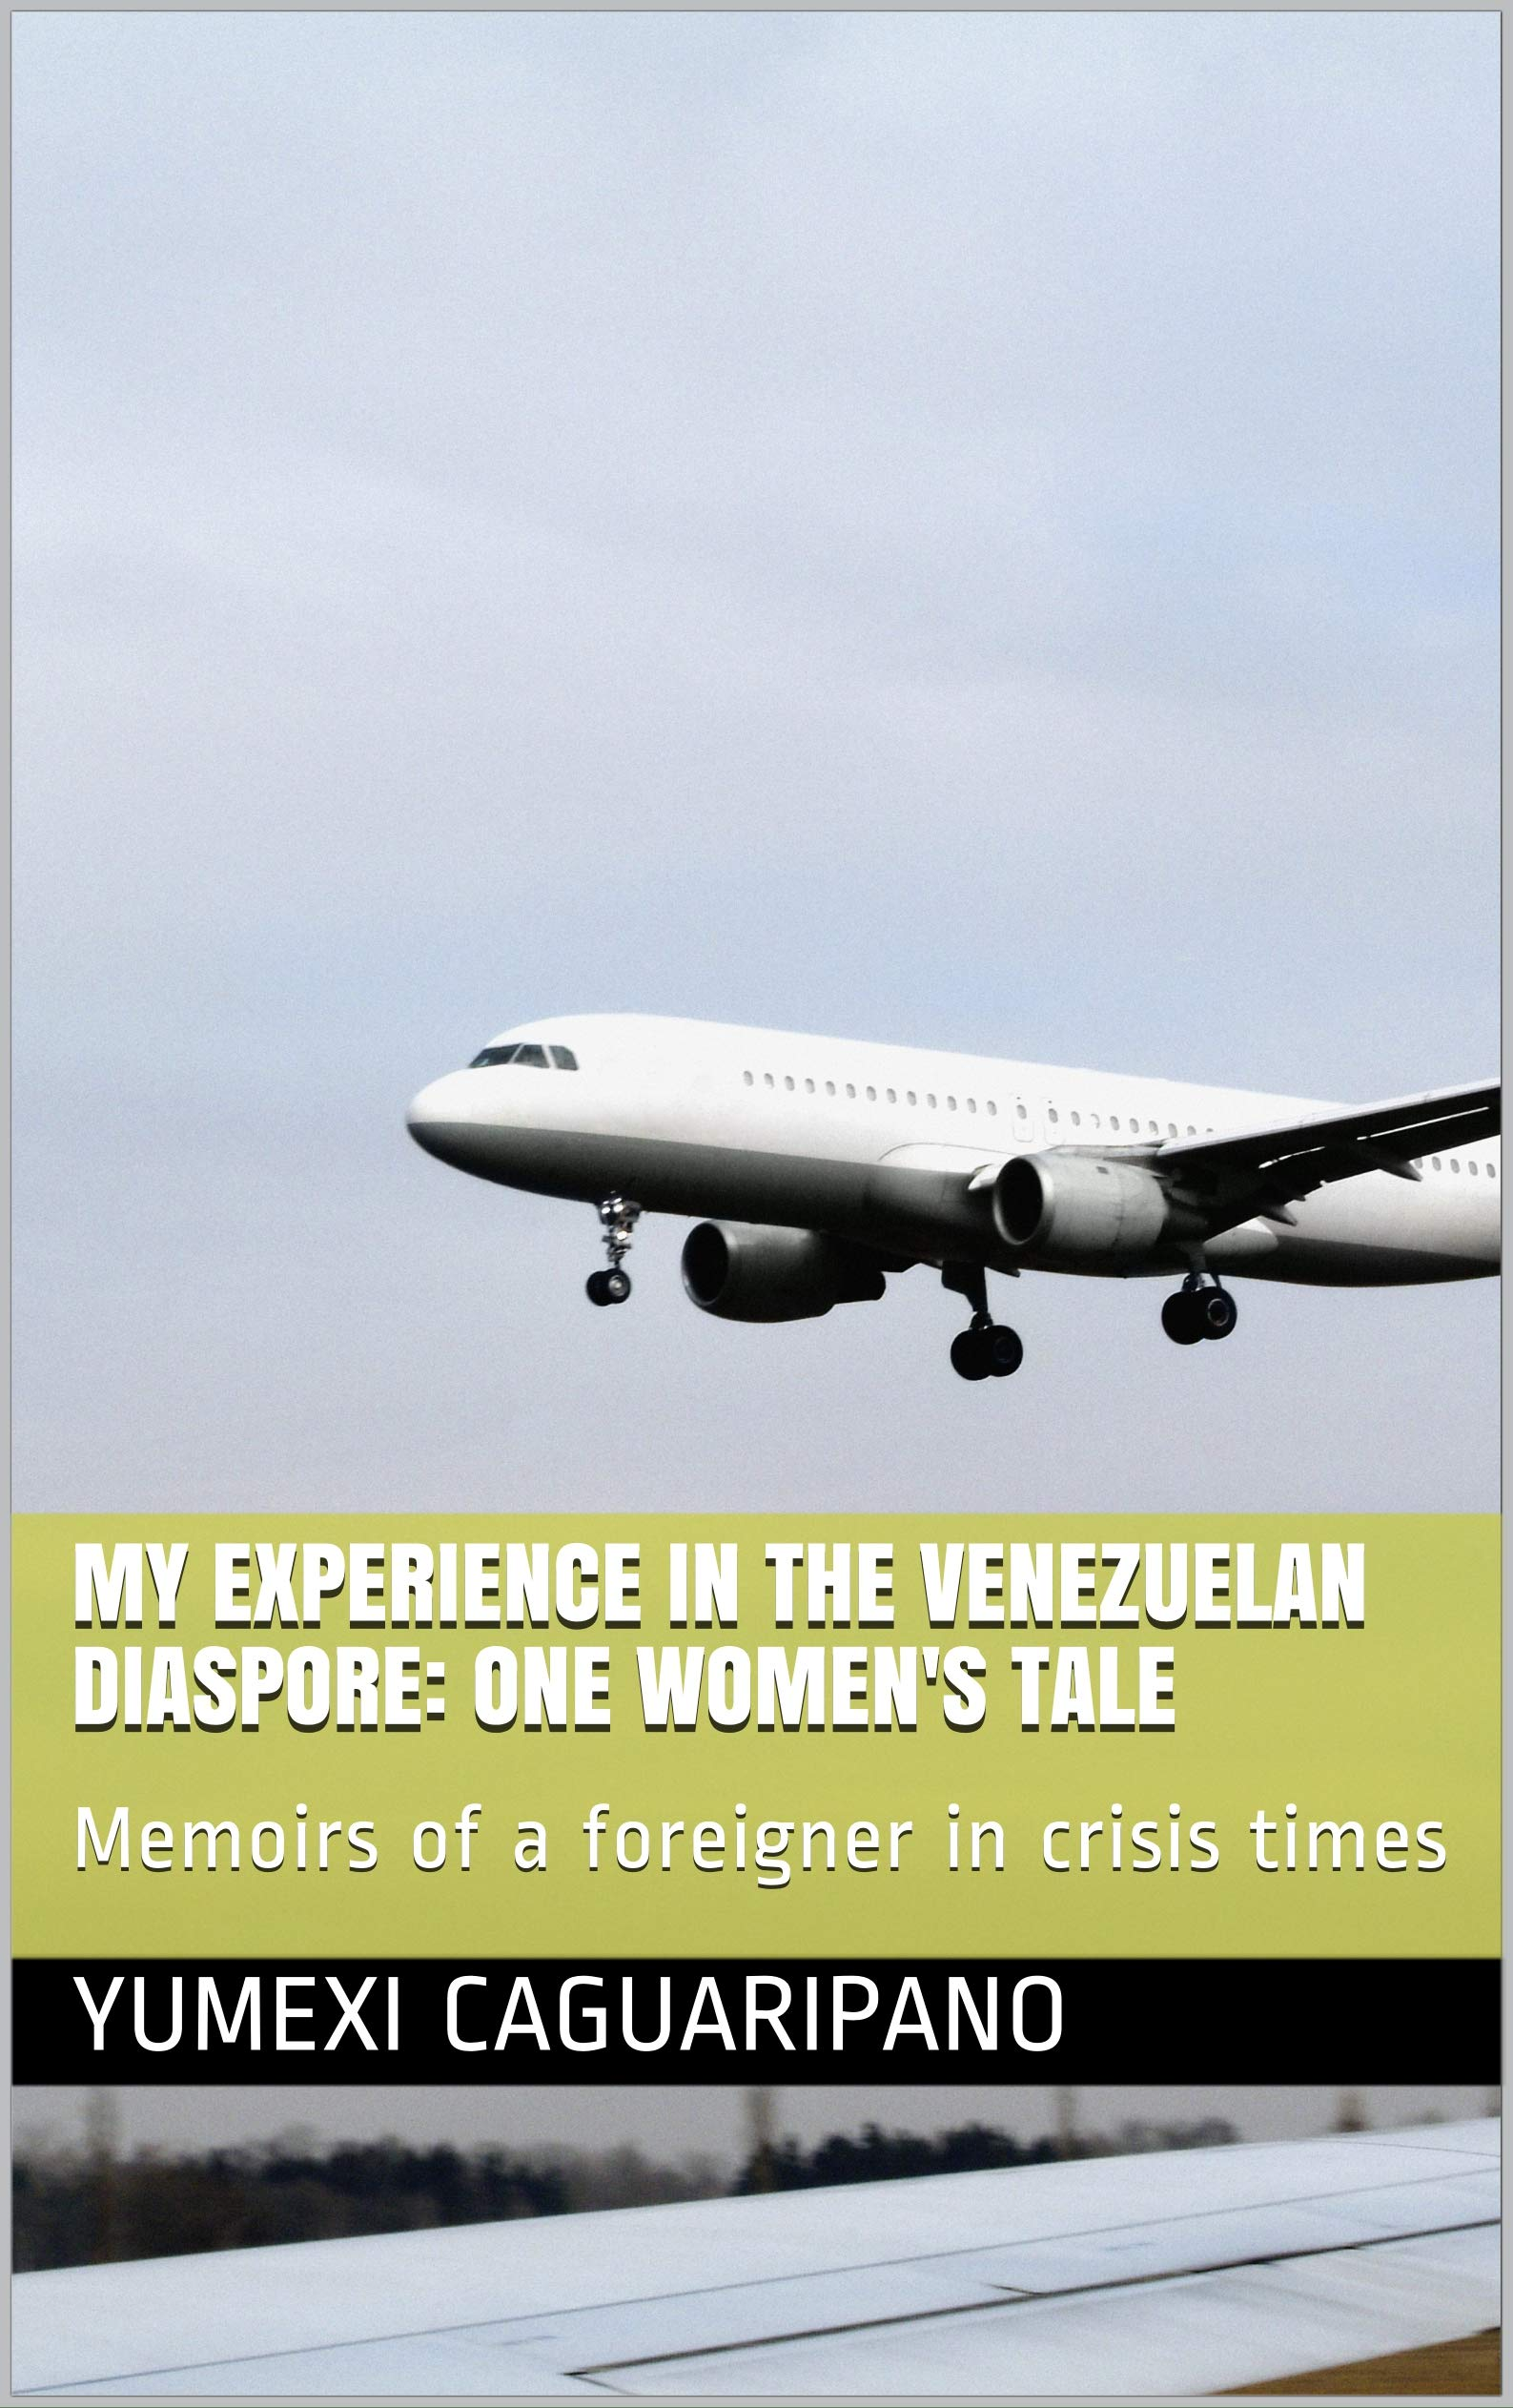 My experience in the venezuelan diaspore: One Women's tale: Memoirs of a foreigner in crisis times